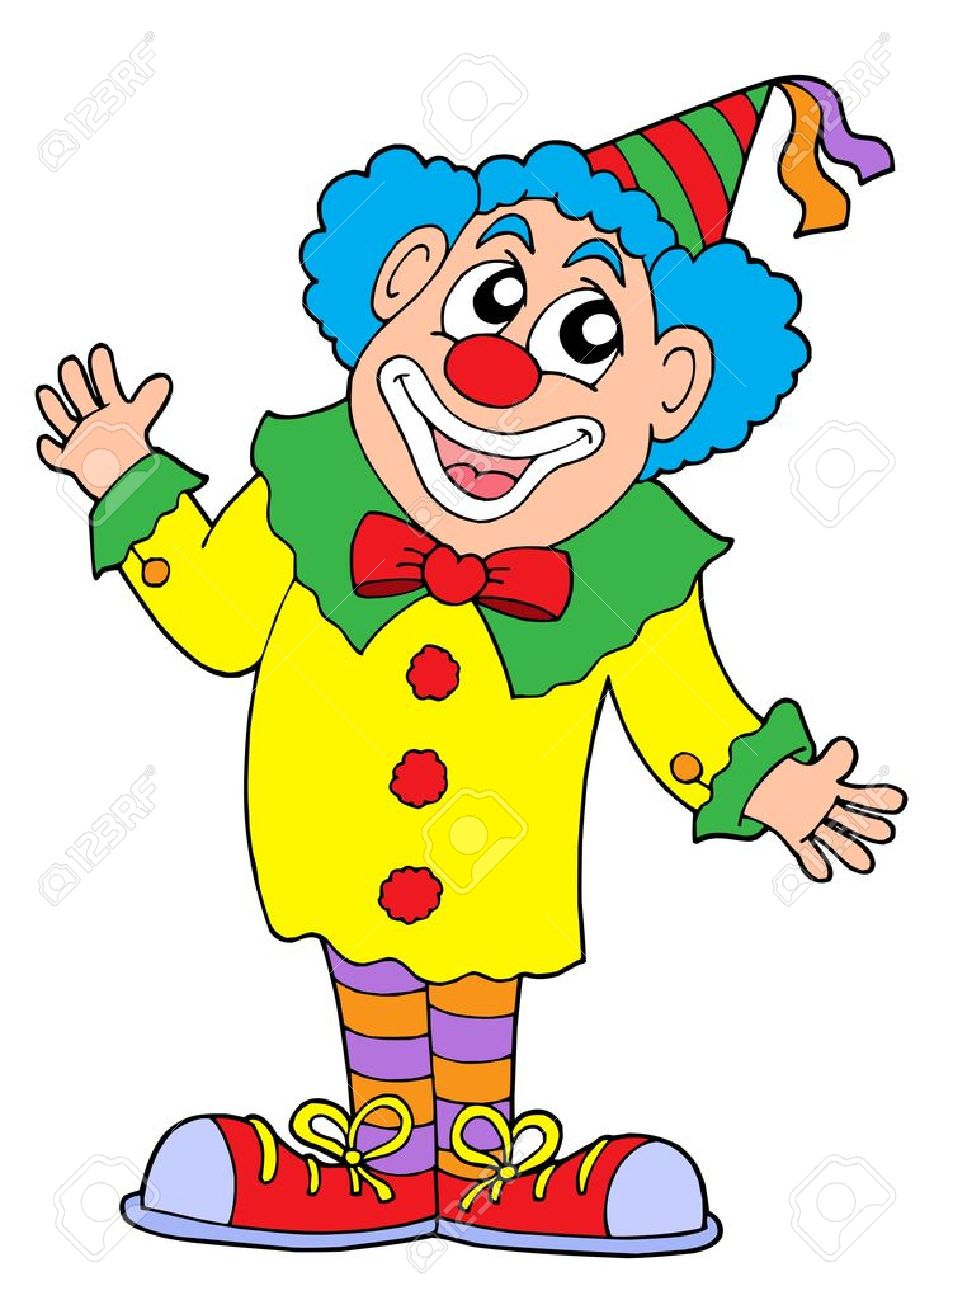 4 804 clown face stock illustrations cliparts and royalty free